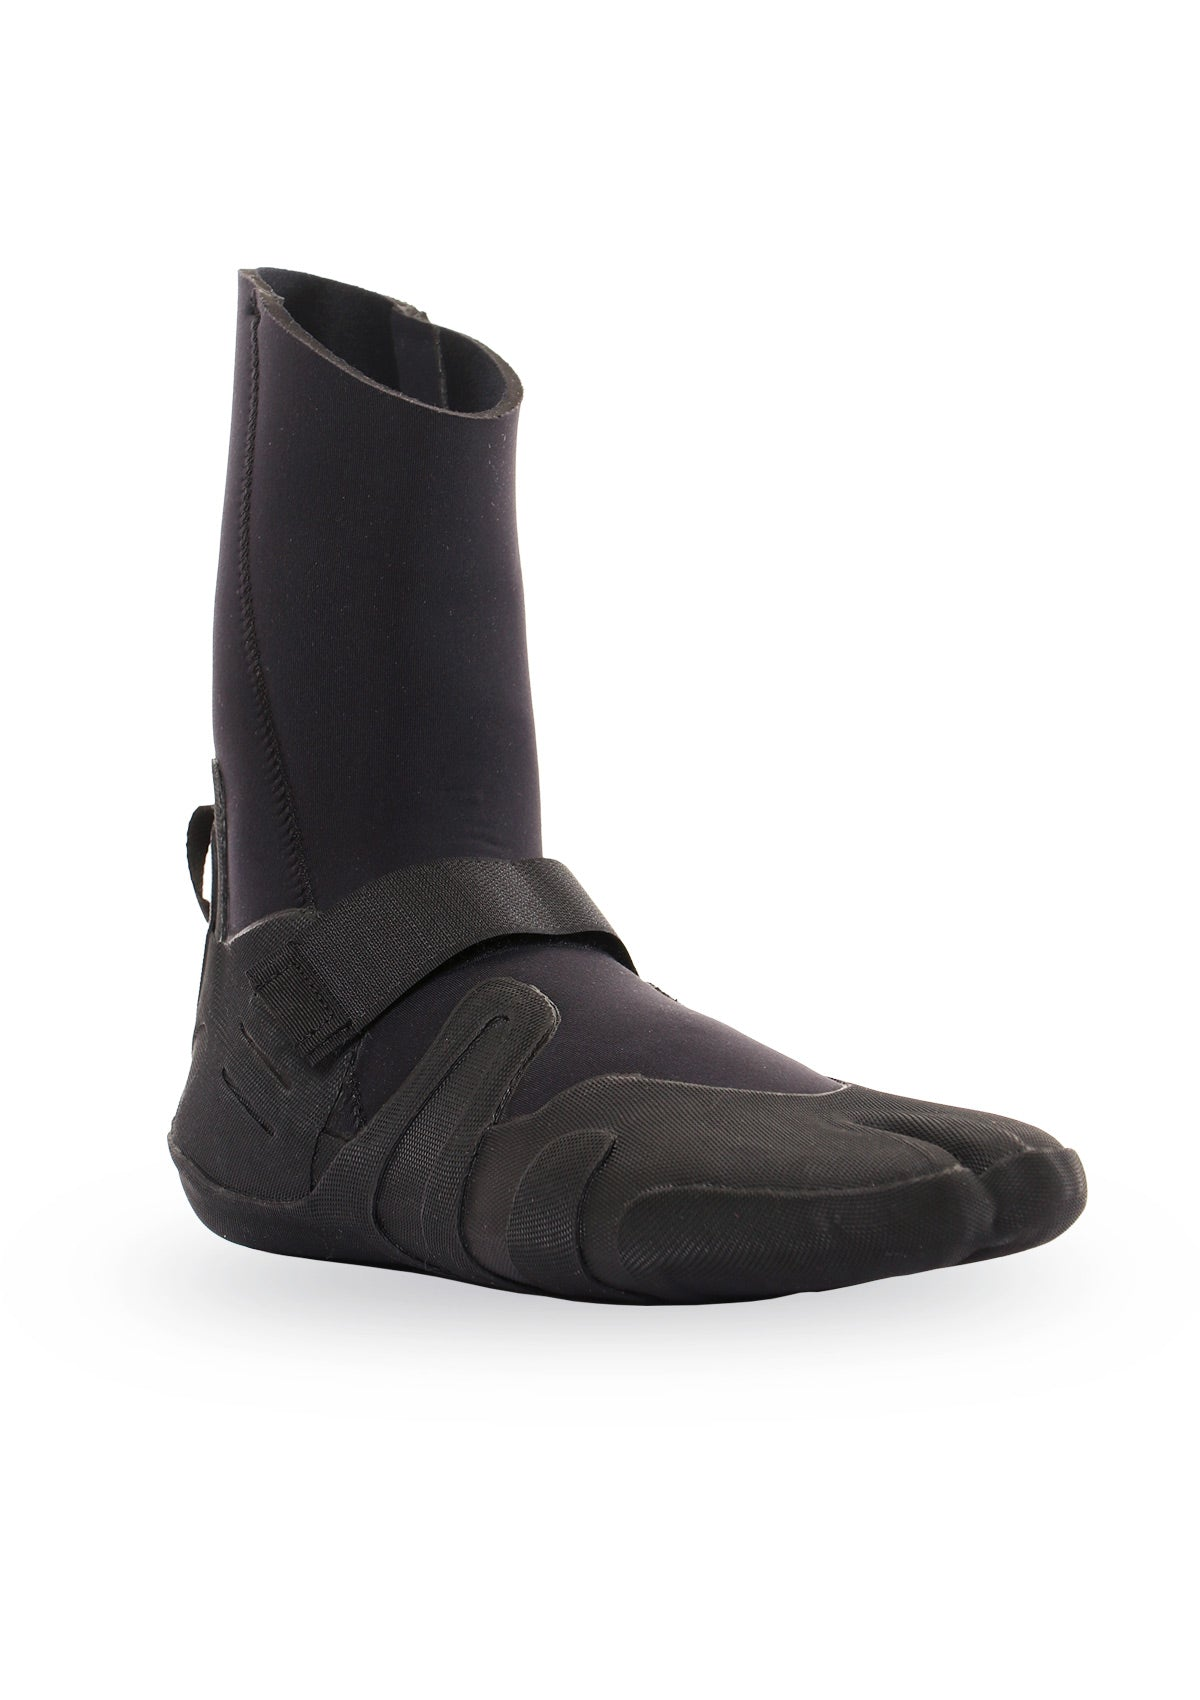 needessentials 4mm booties winter surfing black non branded coldwater